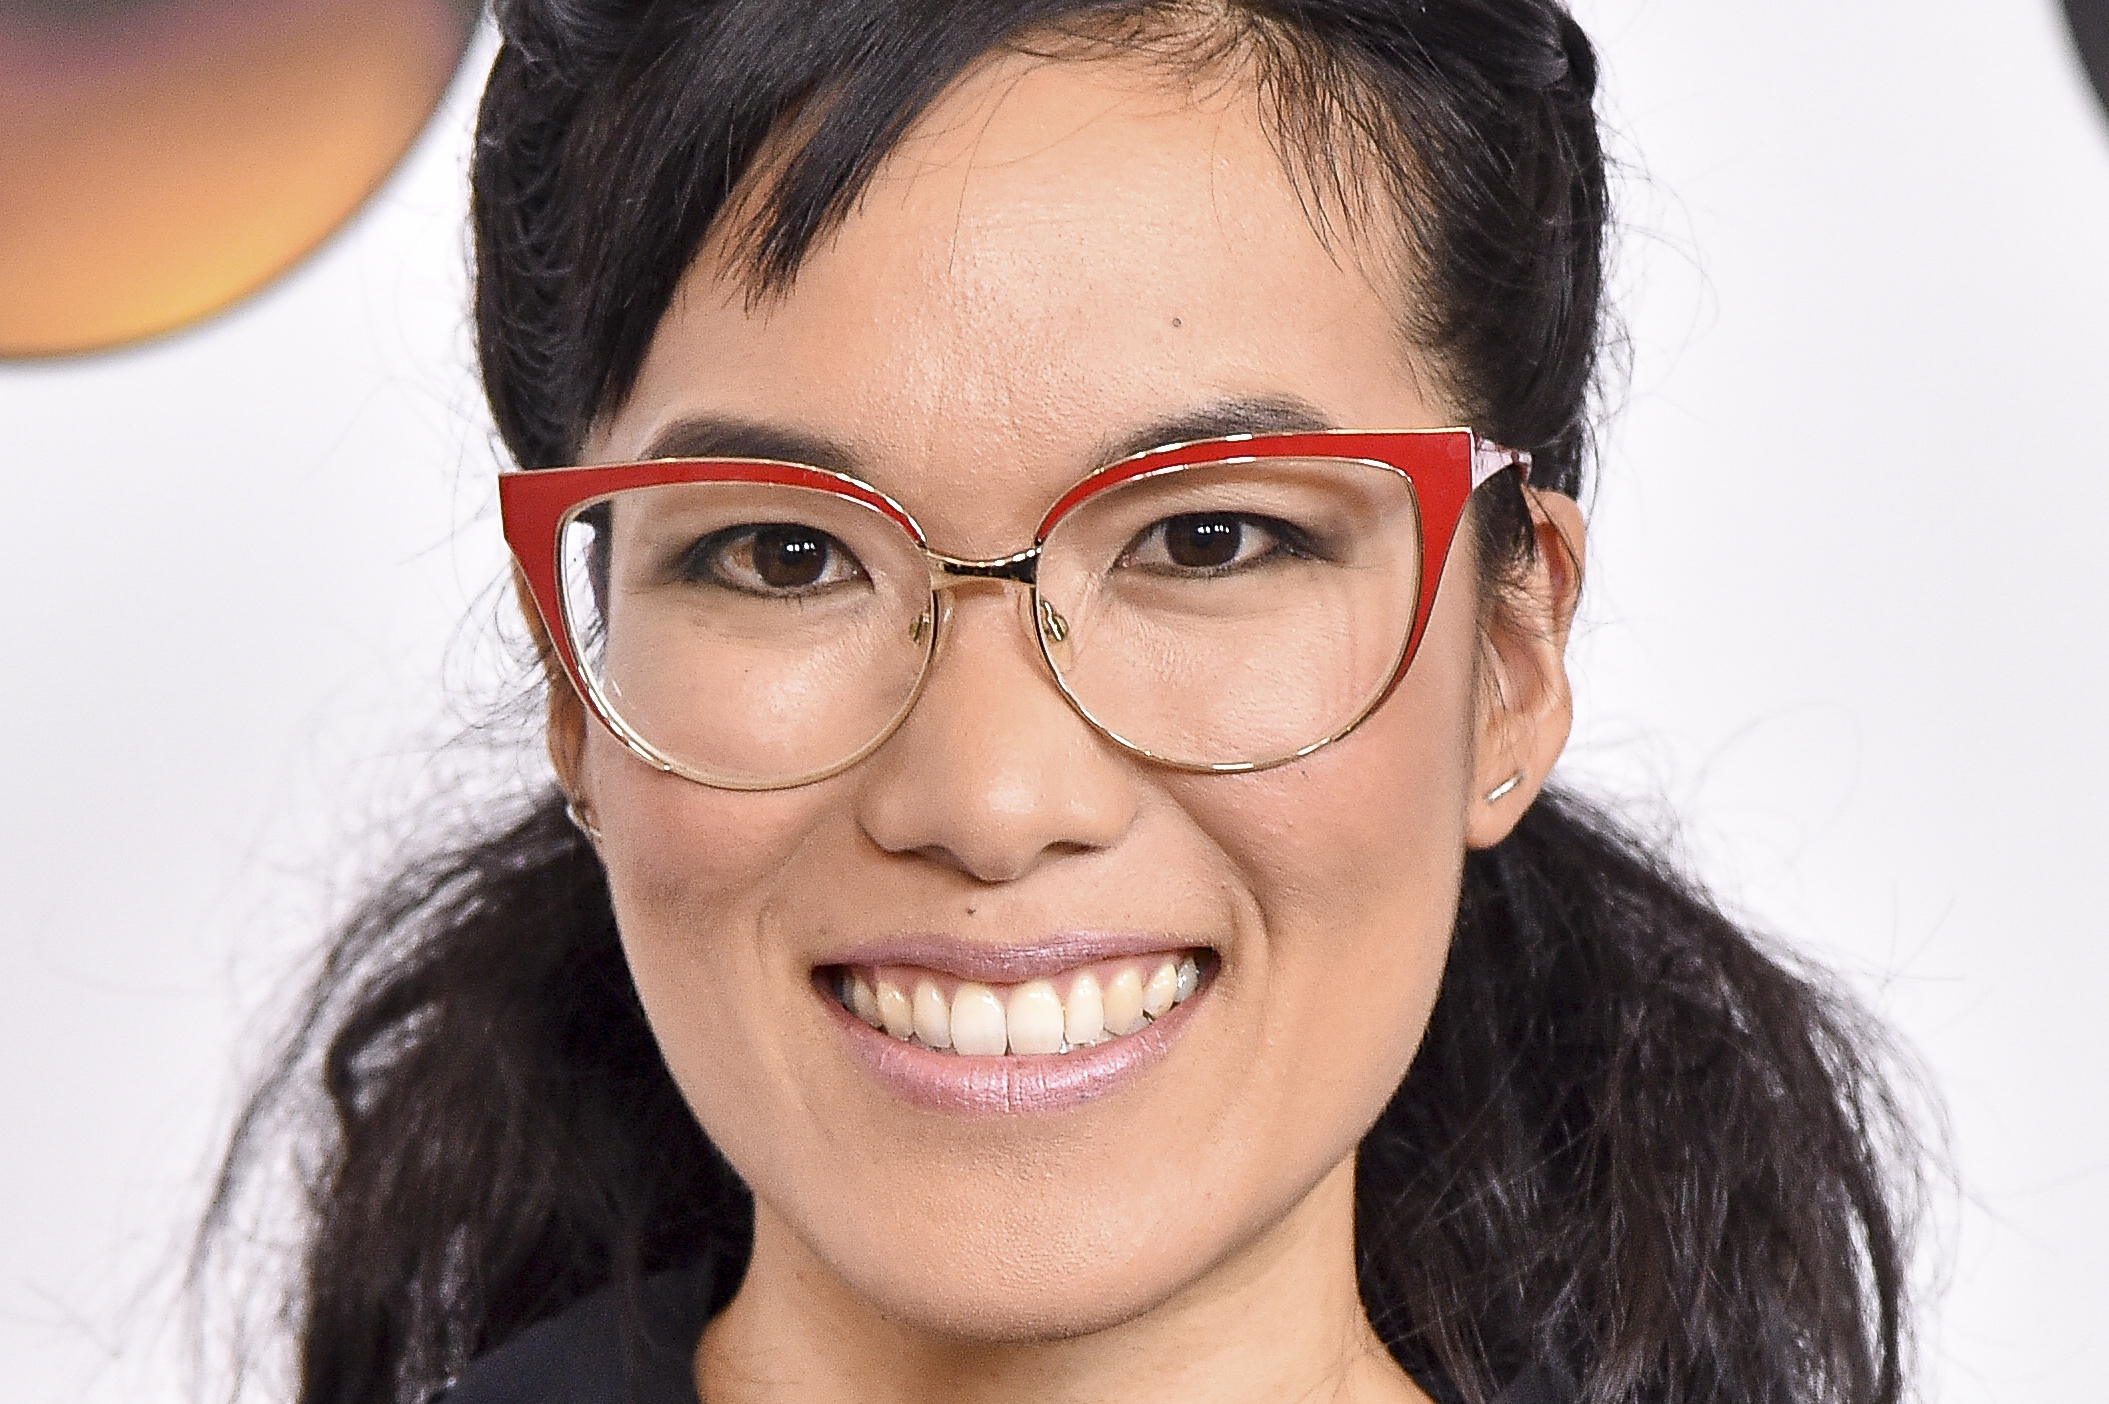 Ali Wong performs at the Chicago Theatre on Sat 4/8.